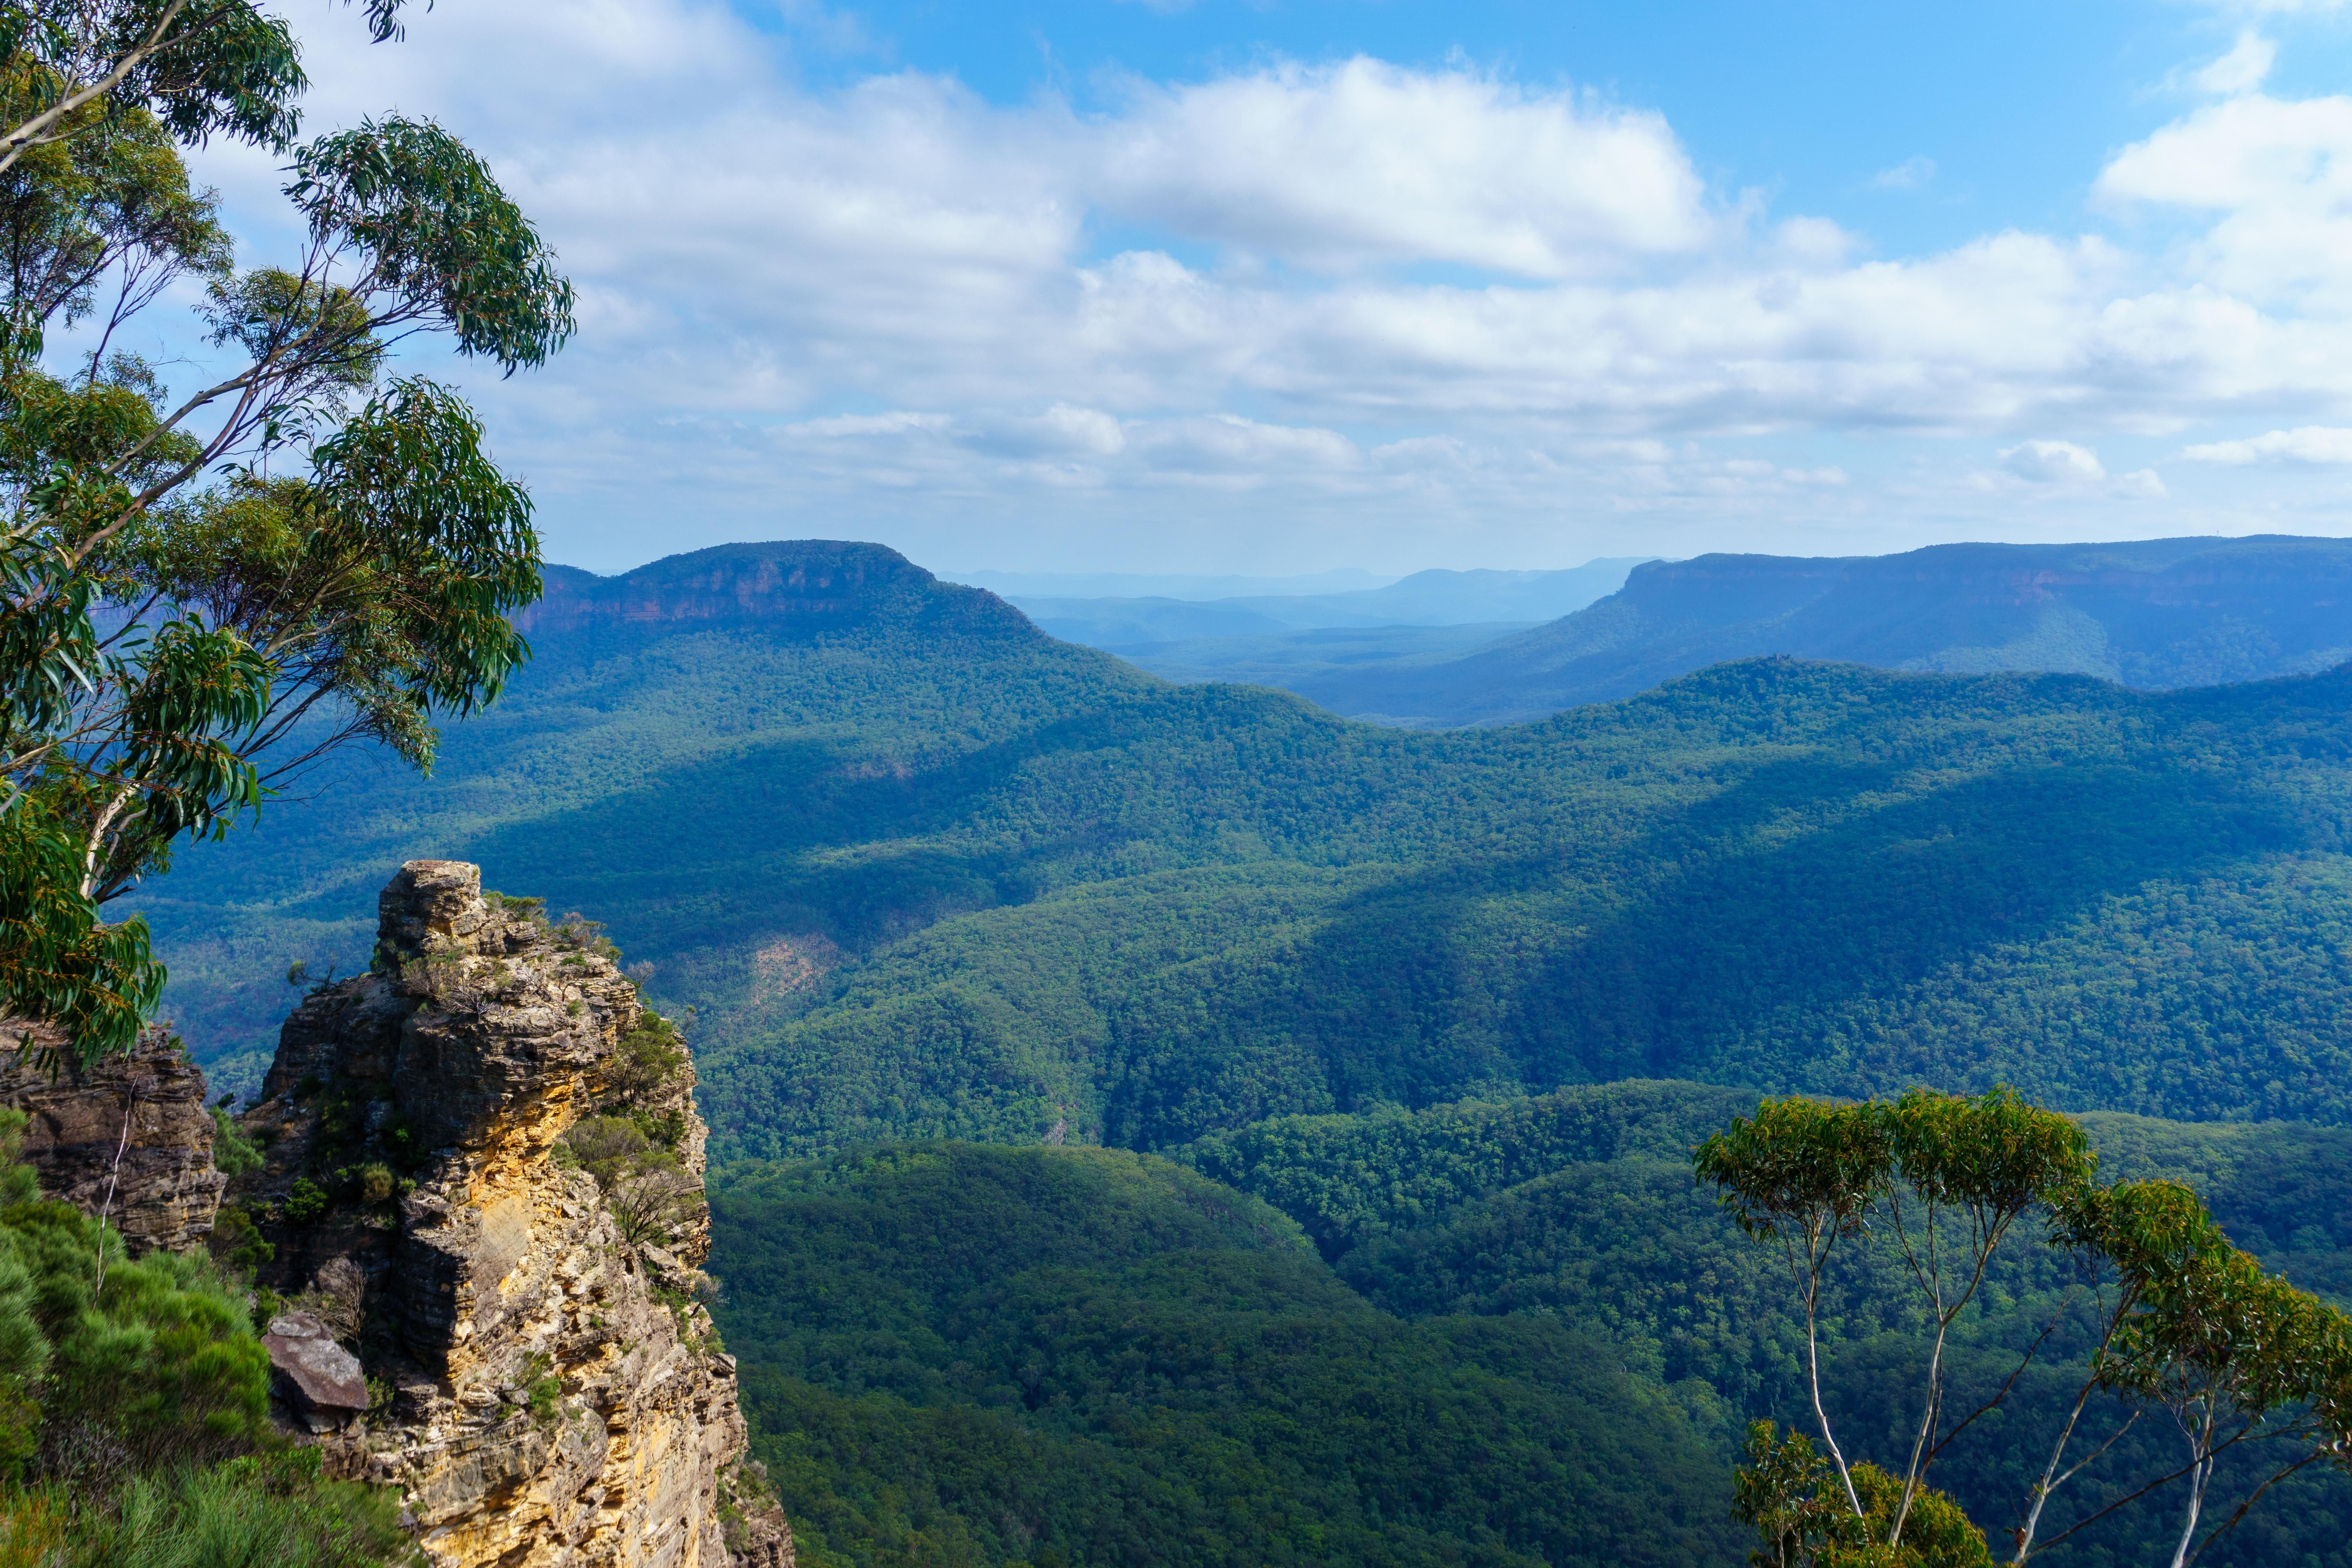 The Blue Mountains Are Actually Blue 6000x4000 Landscape Pictures Beautiful Nature Landscape Photography